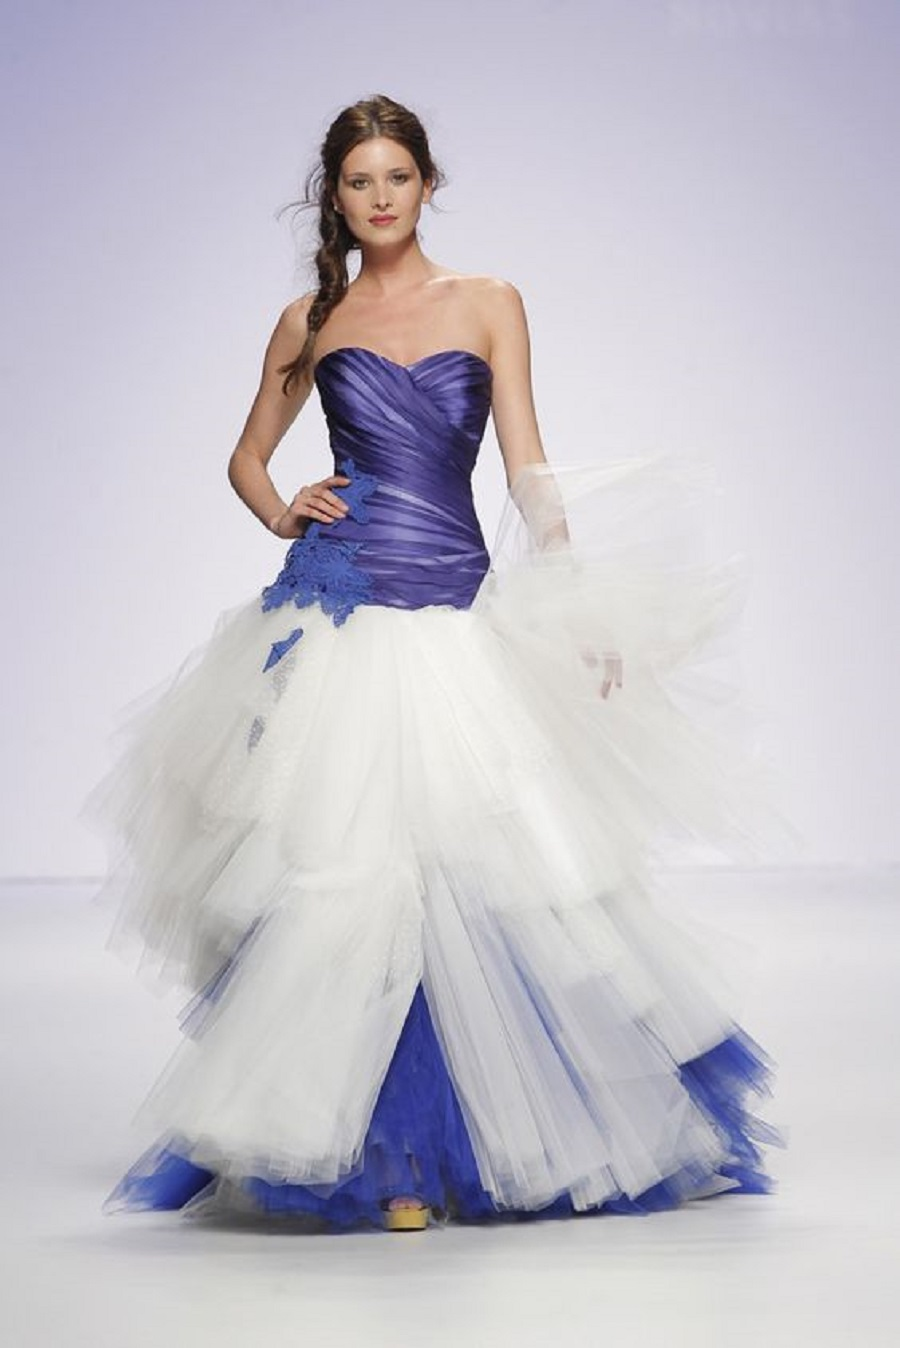 MODERN BRIDAL GOWNS IN BLUE6